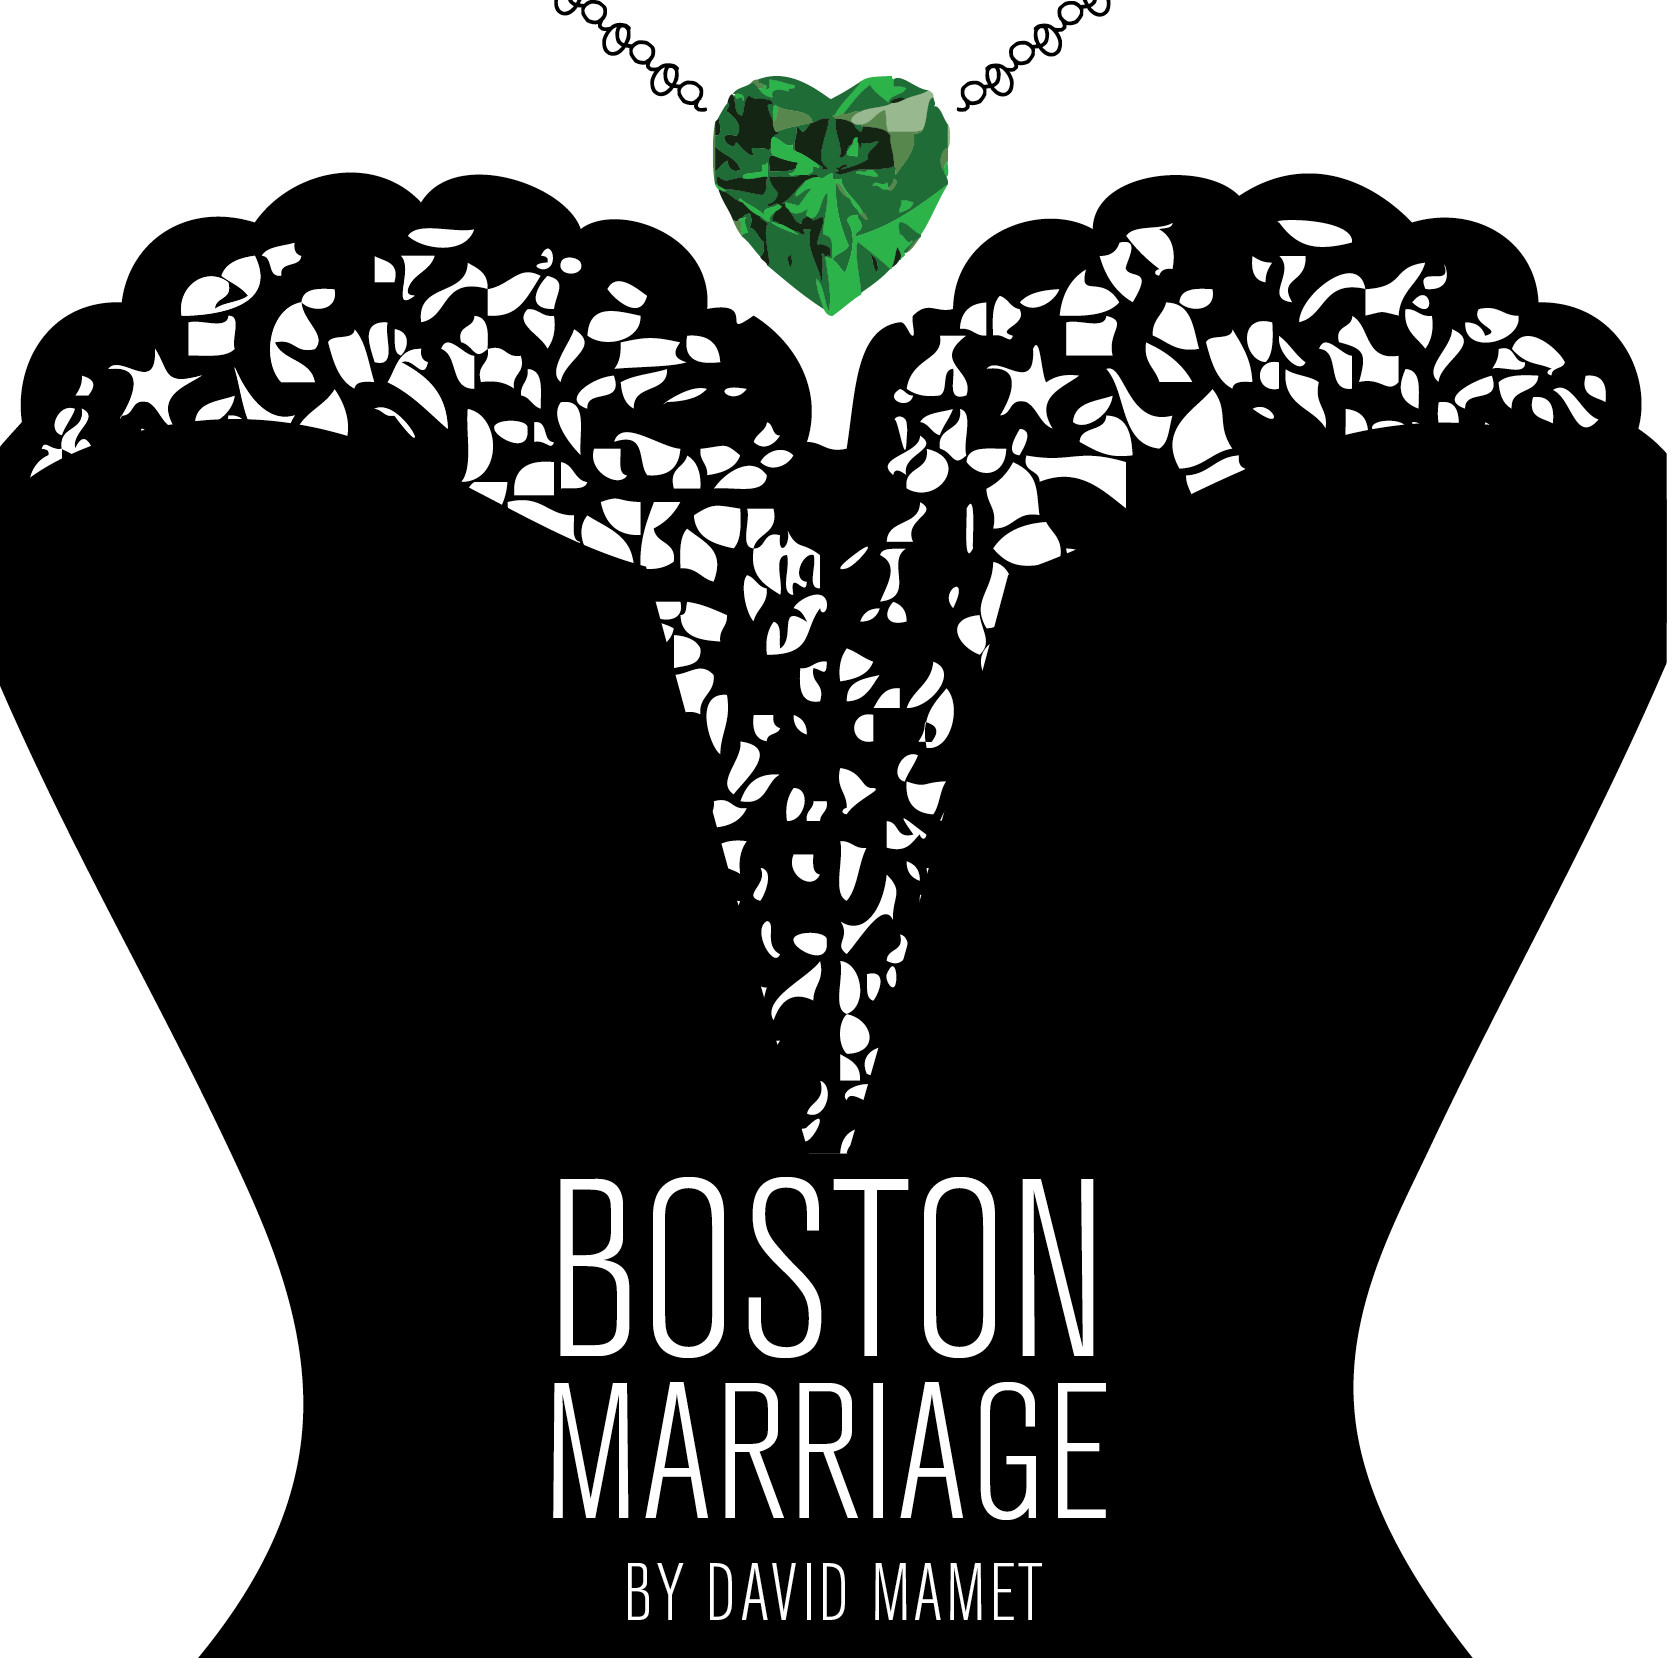 """""""Boston Marriage by David Mamet"""" image is a graphic of a corset with a green jewelled necklace"""